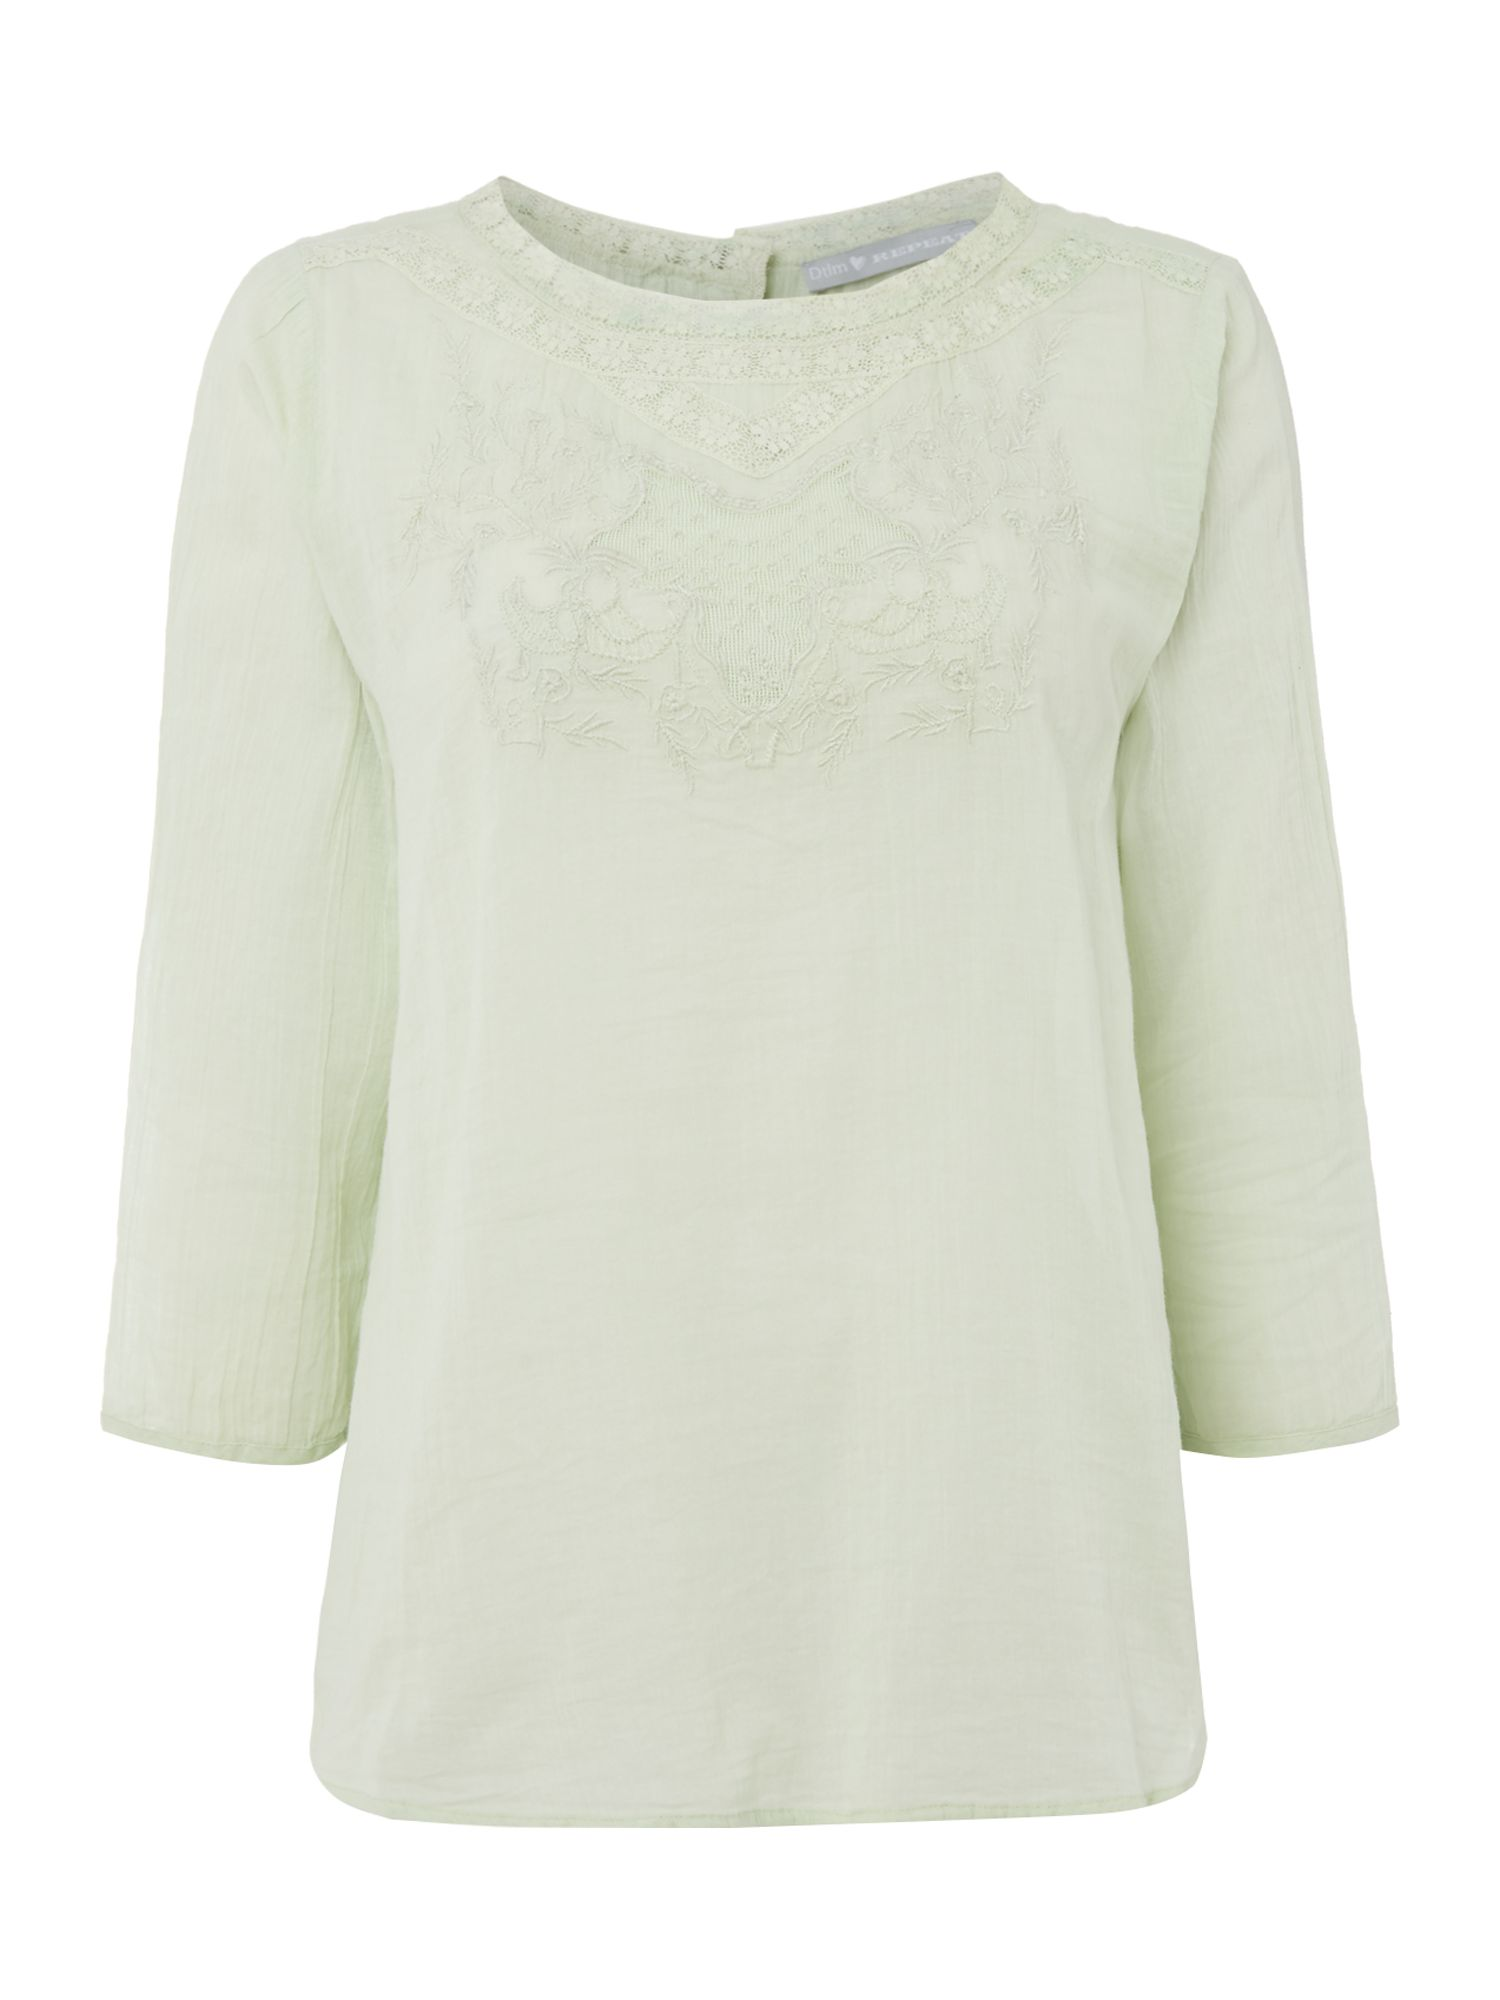 Repeat Cashmere Embroidered neck detail top, Jade